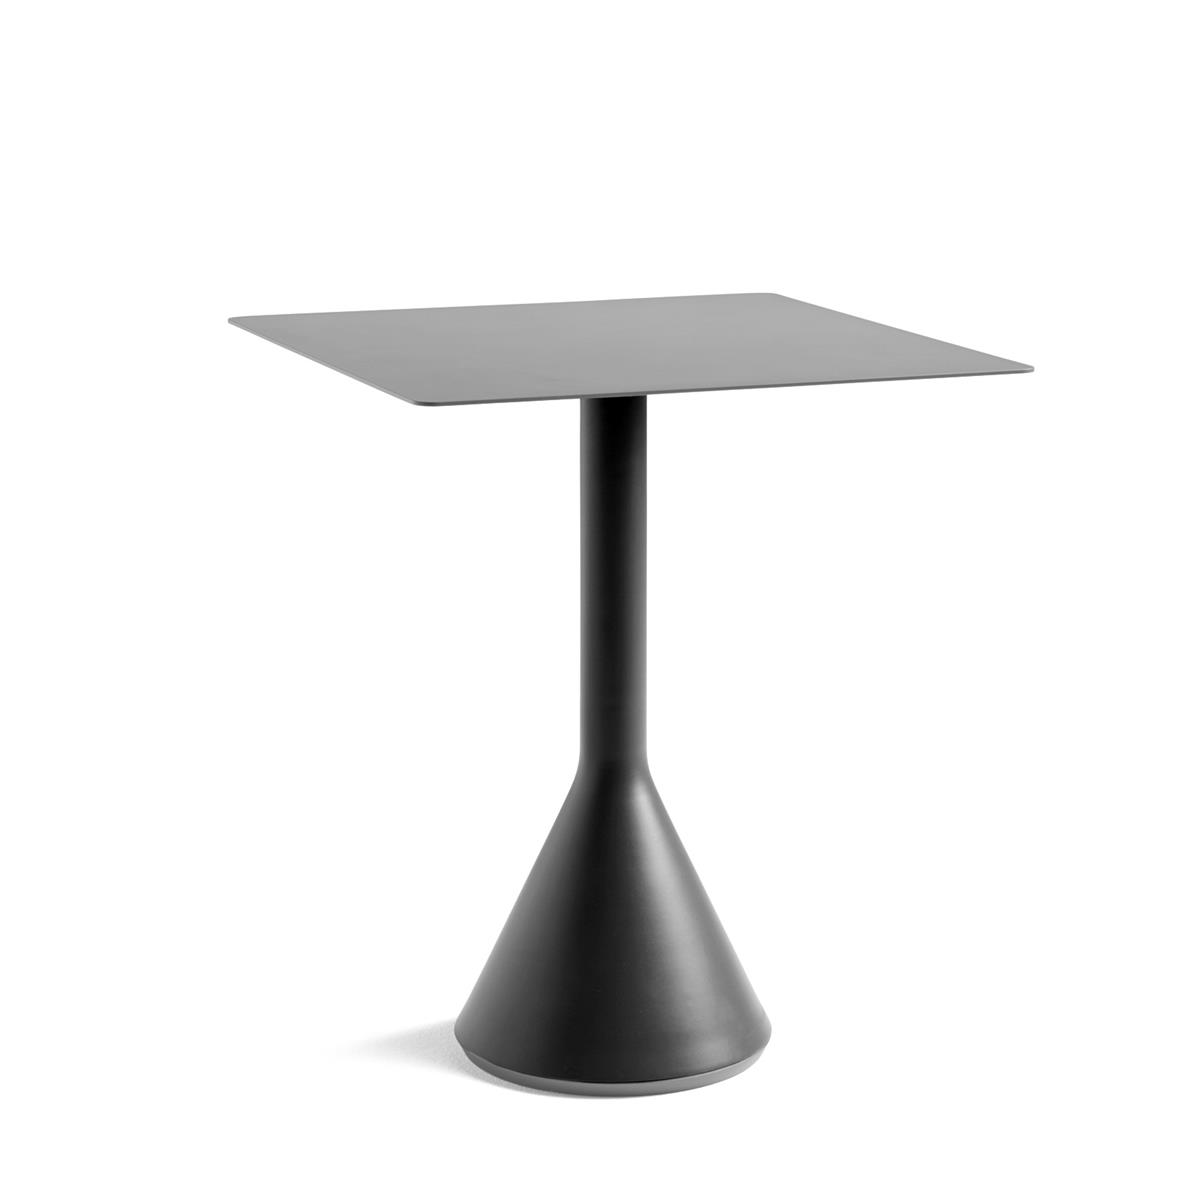 Palissade Cone Table 65 x 65 x H74 - Anthracite